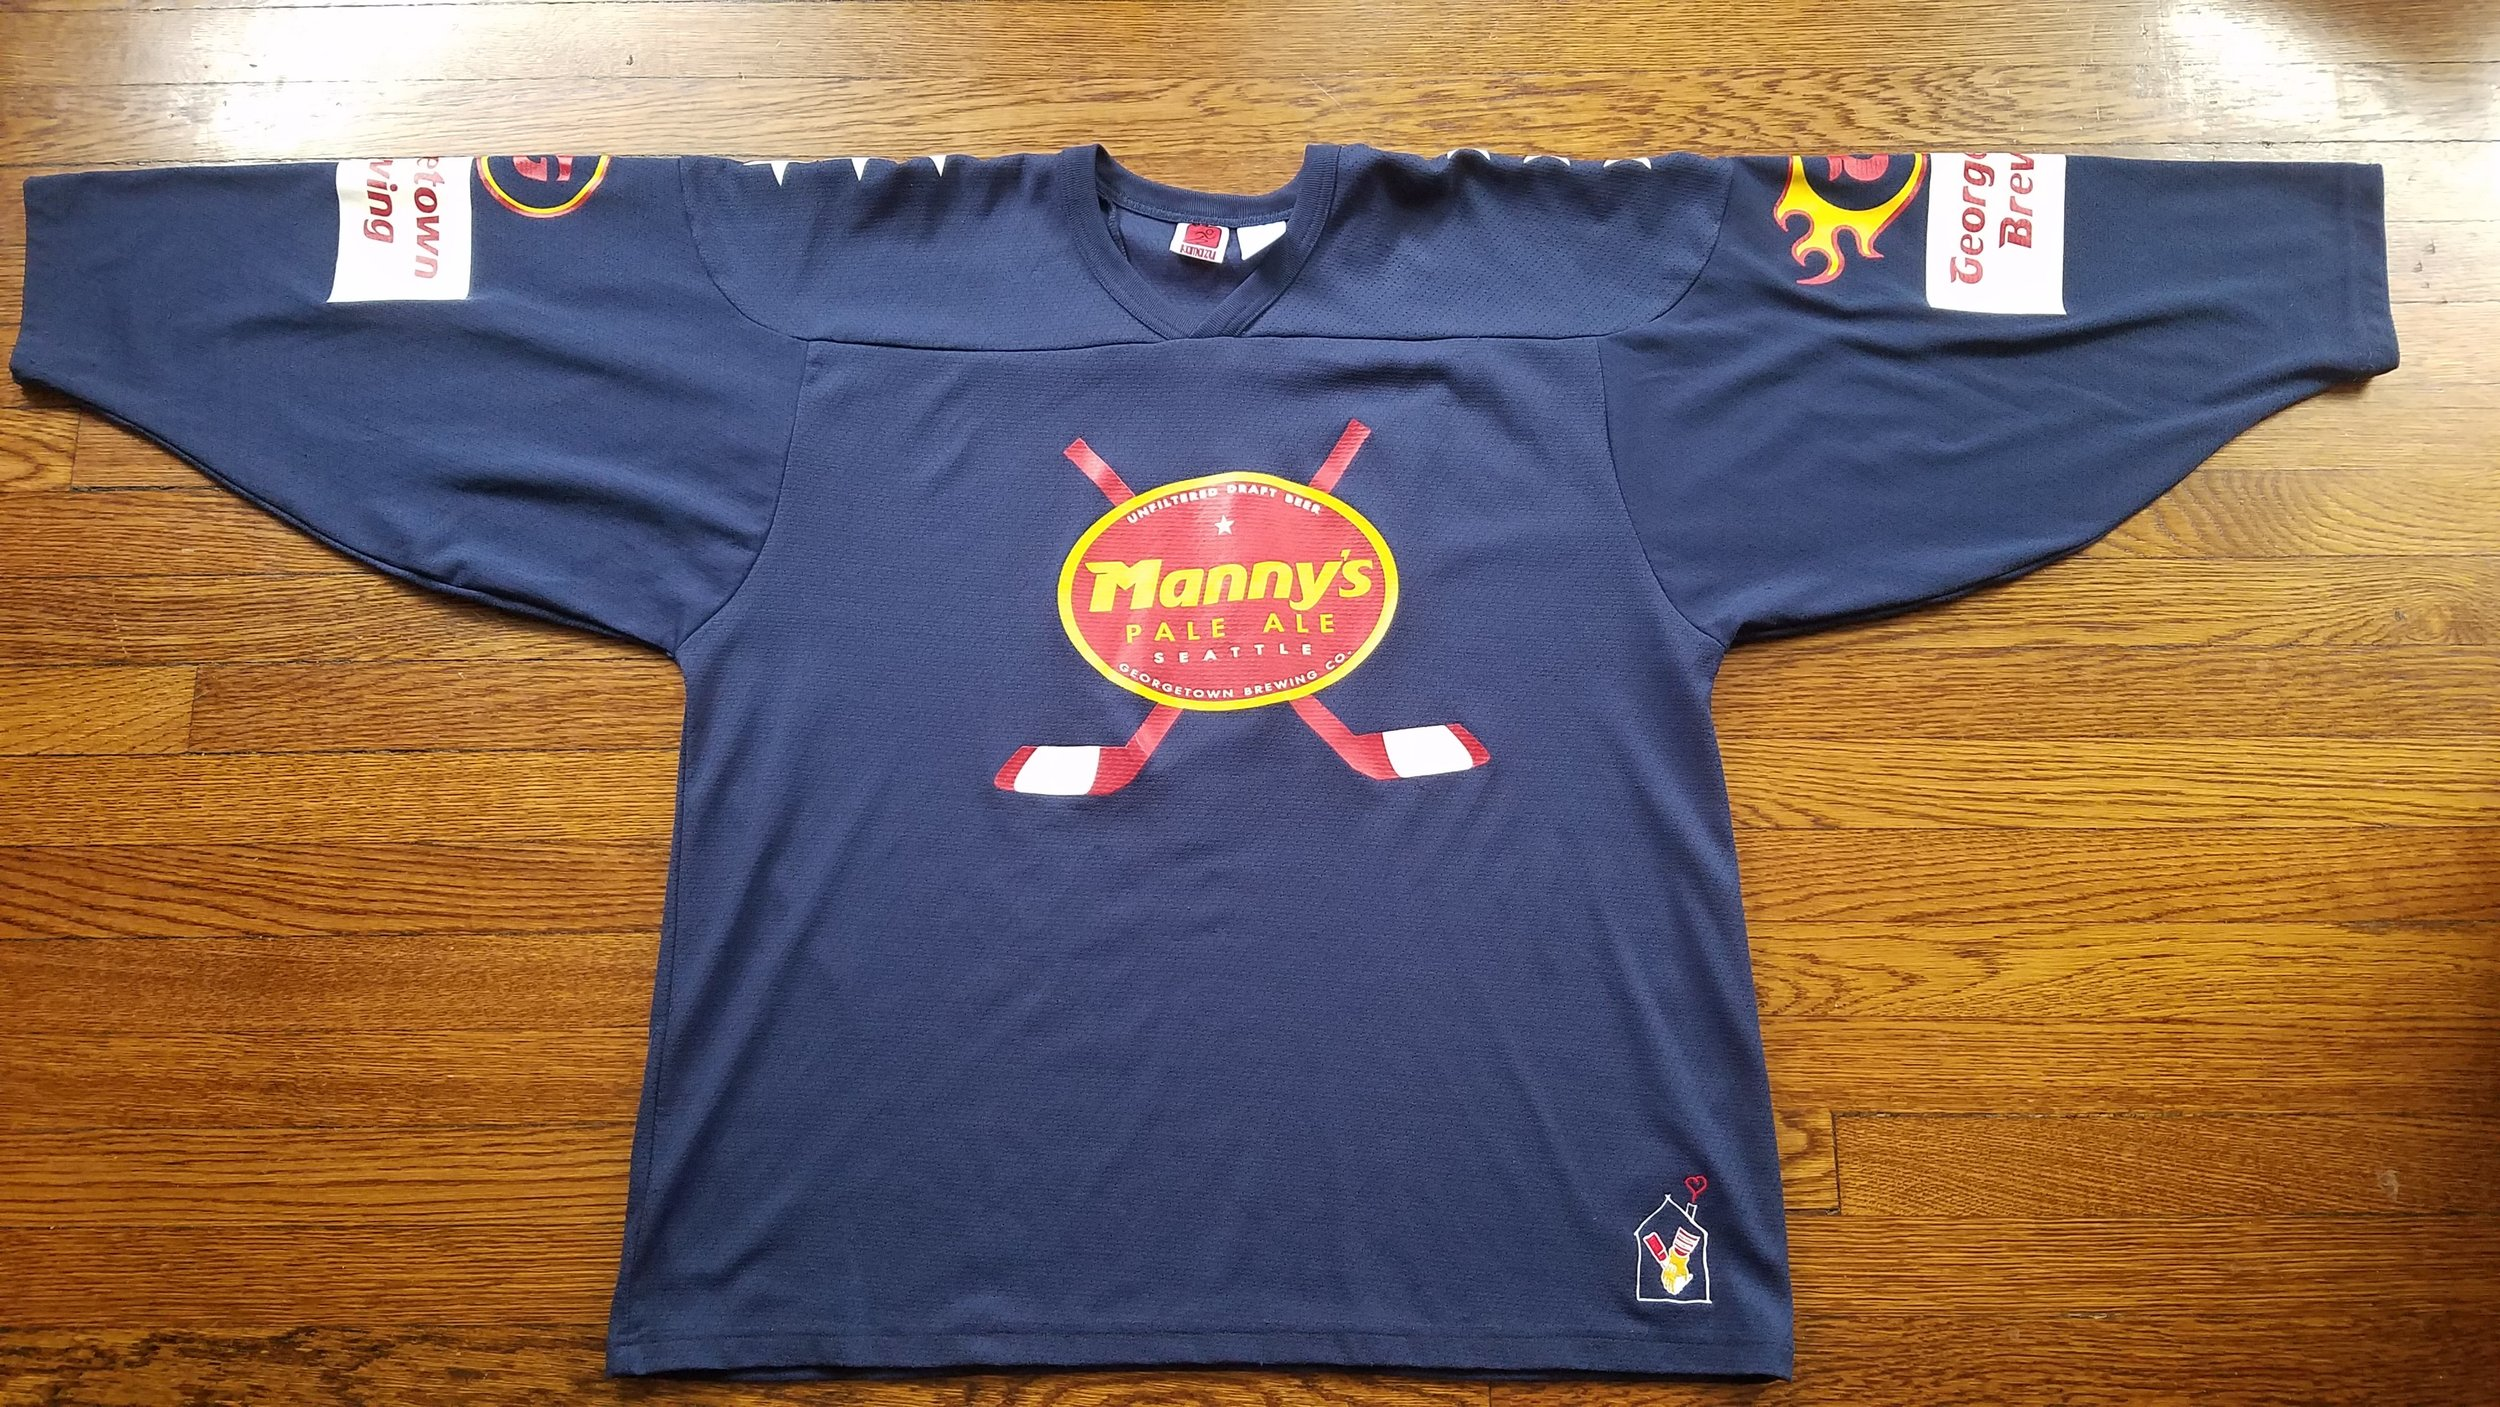 Manny's Mayhem team jersey - back of jersey is blank and ready for you to customize!